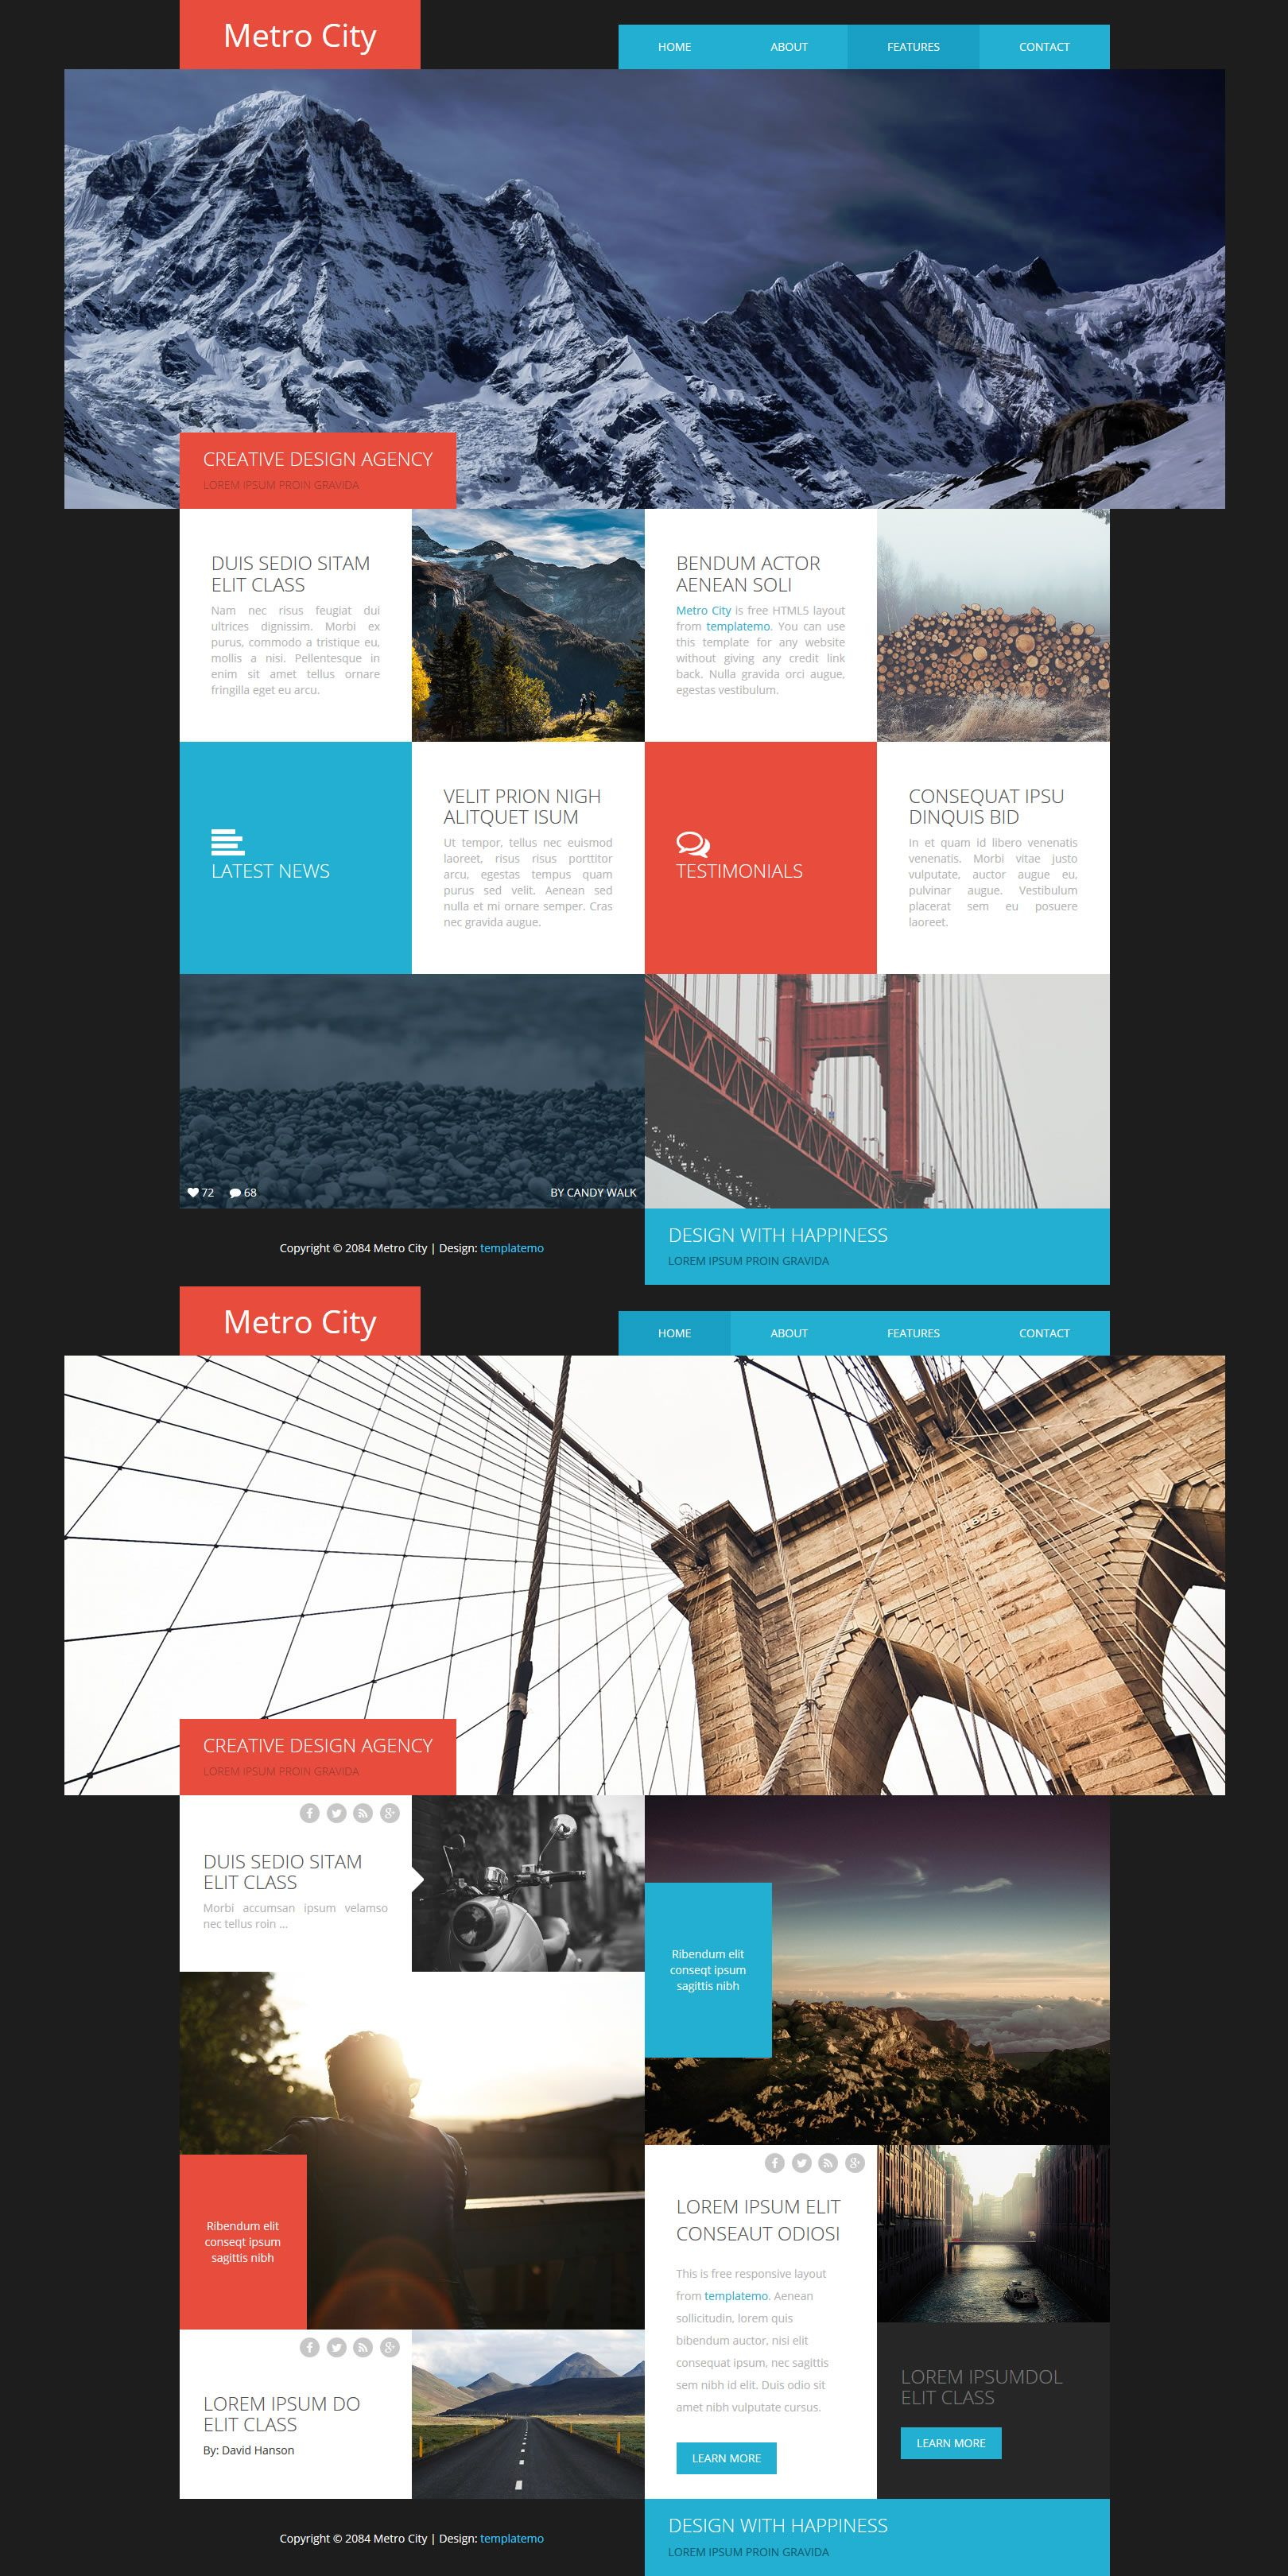 Metro City Metro Style Grid Blocks For Different Contents This Template Incorporates Bootstrap V3 3 5 Respon Testimonials Design Html And Css Templates City